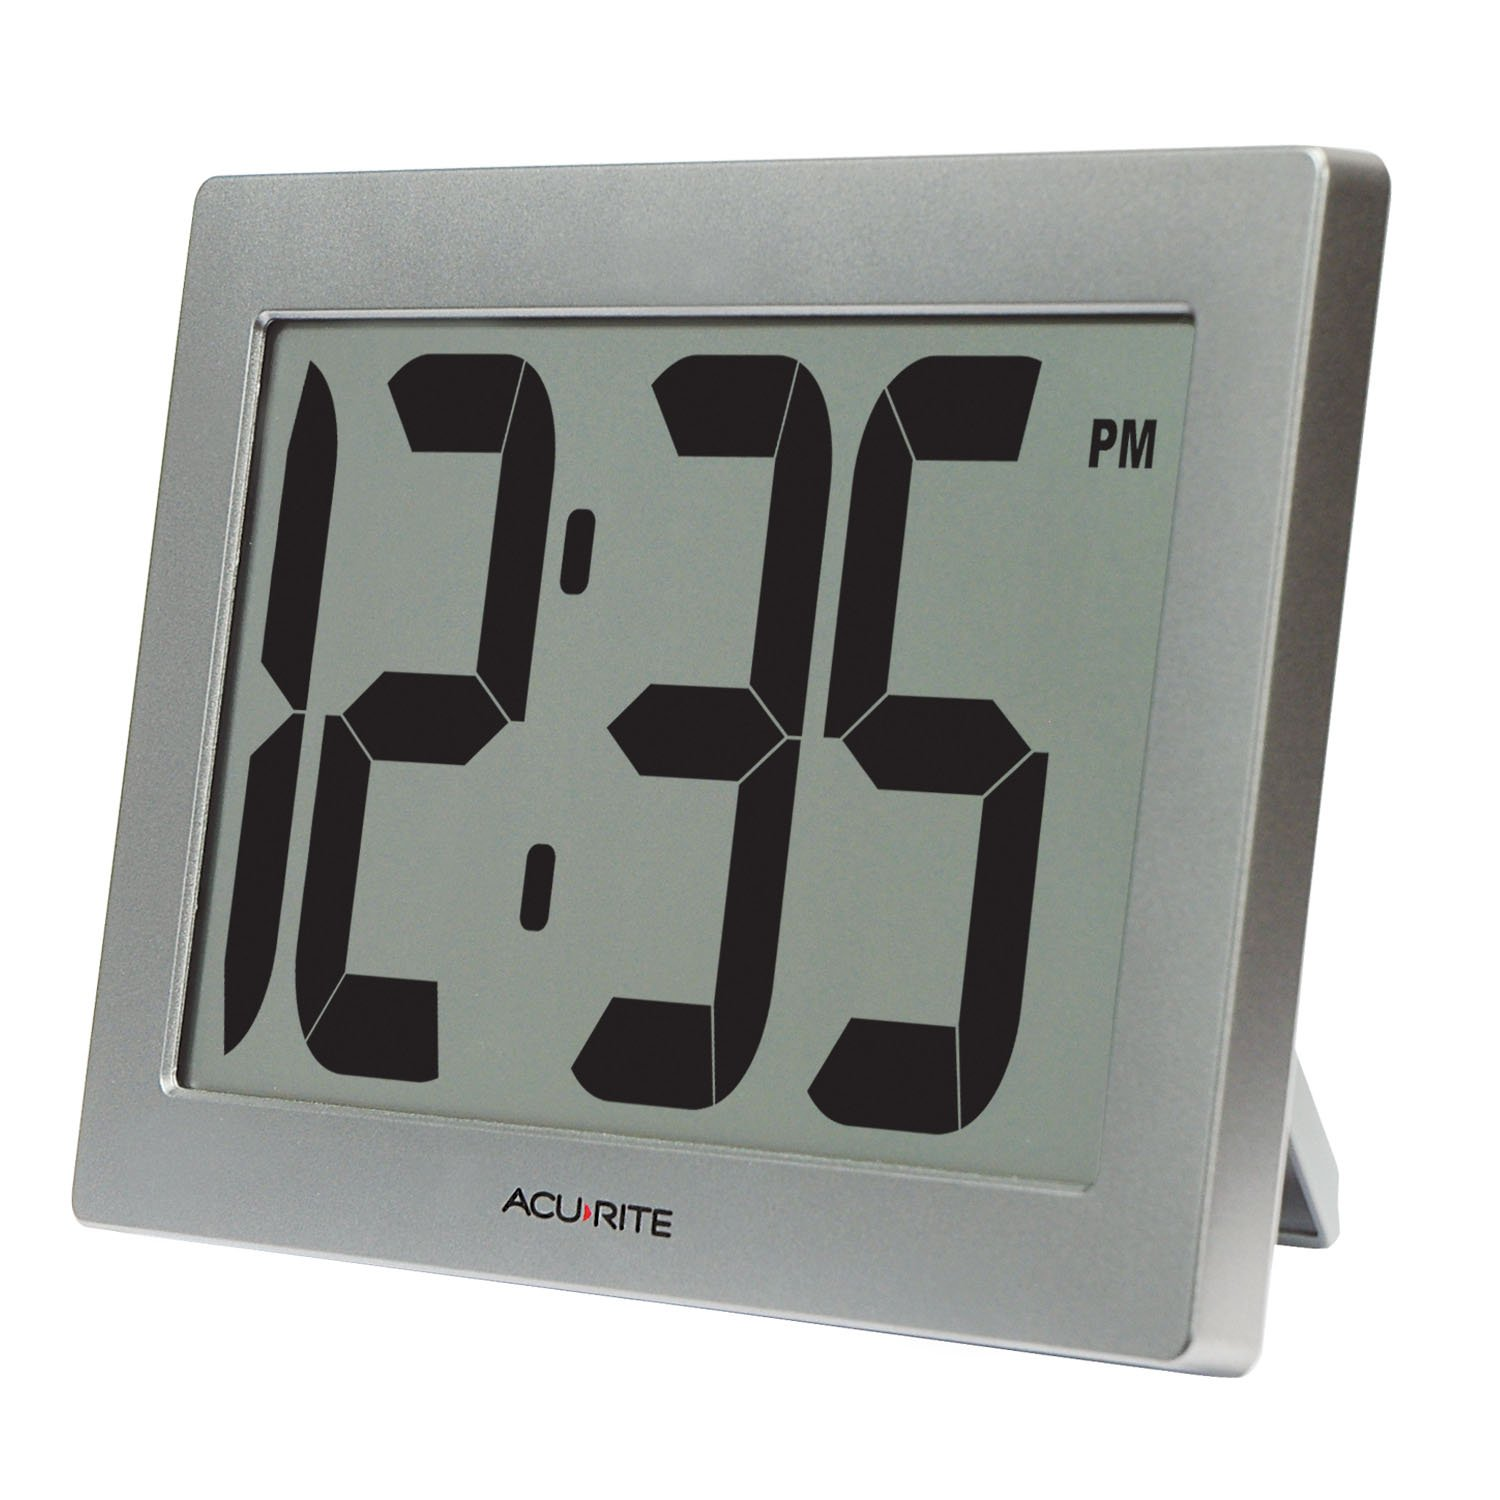 AcuRite 75102 9.5'' Large Digital Clock with Intelli-Time Technology by AcuRite